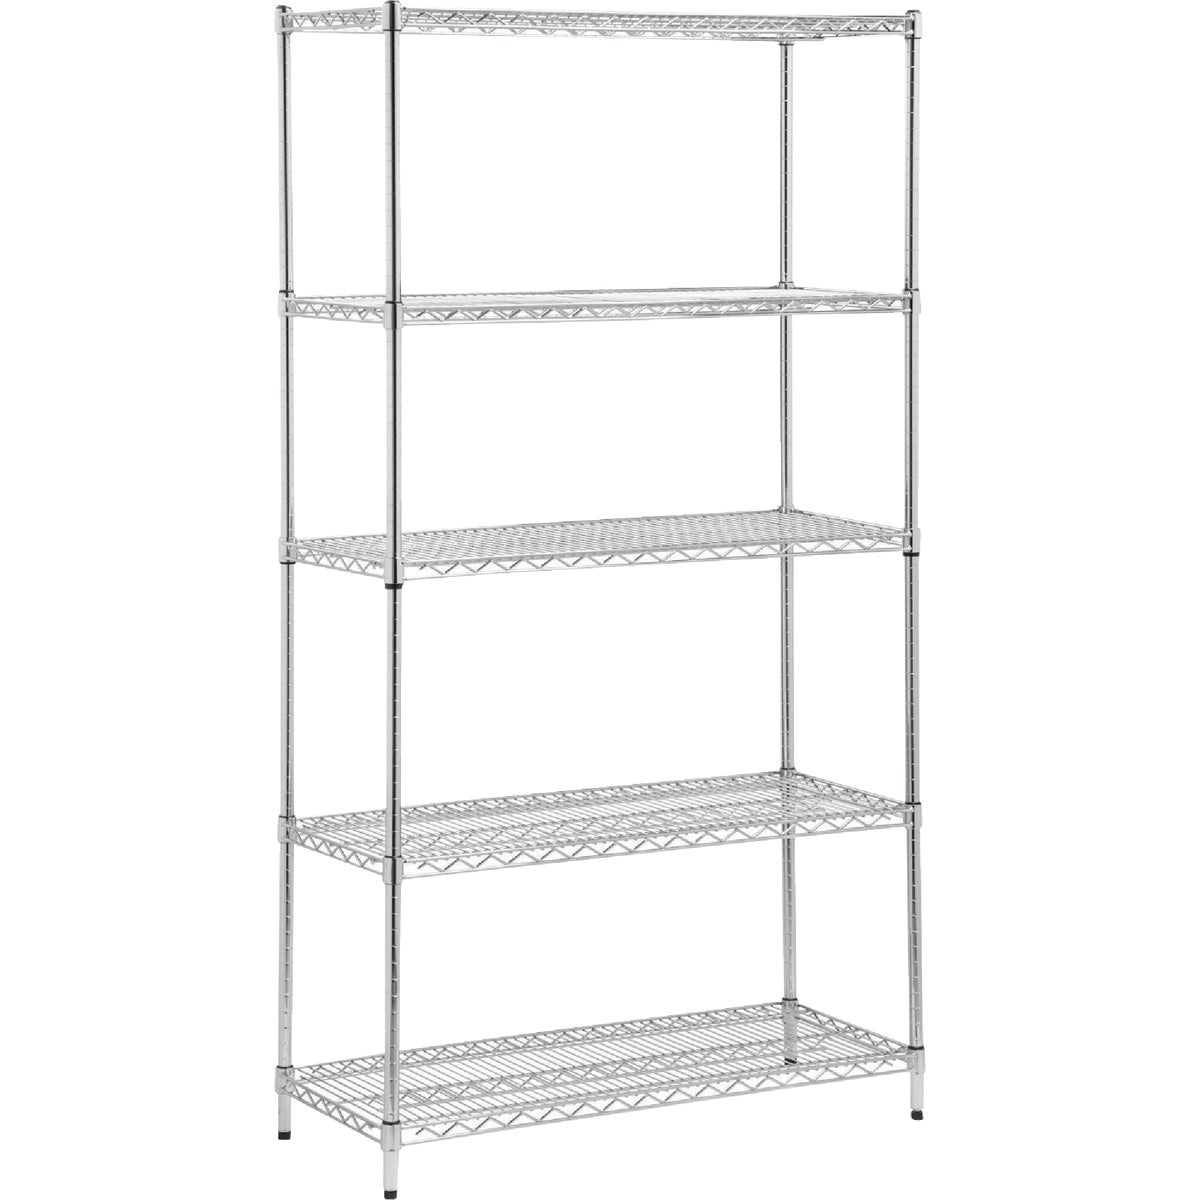 CHR 5 TIER SHELF - SHF-01443 by Honey Can Do